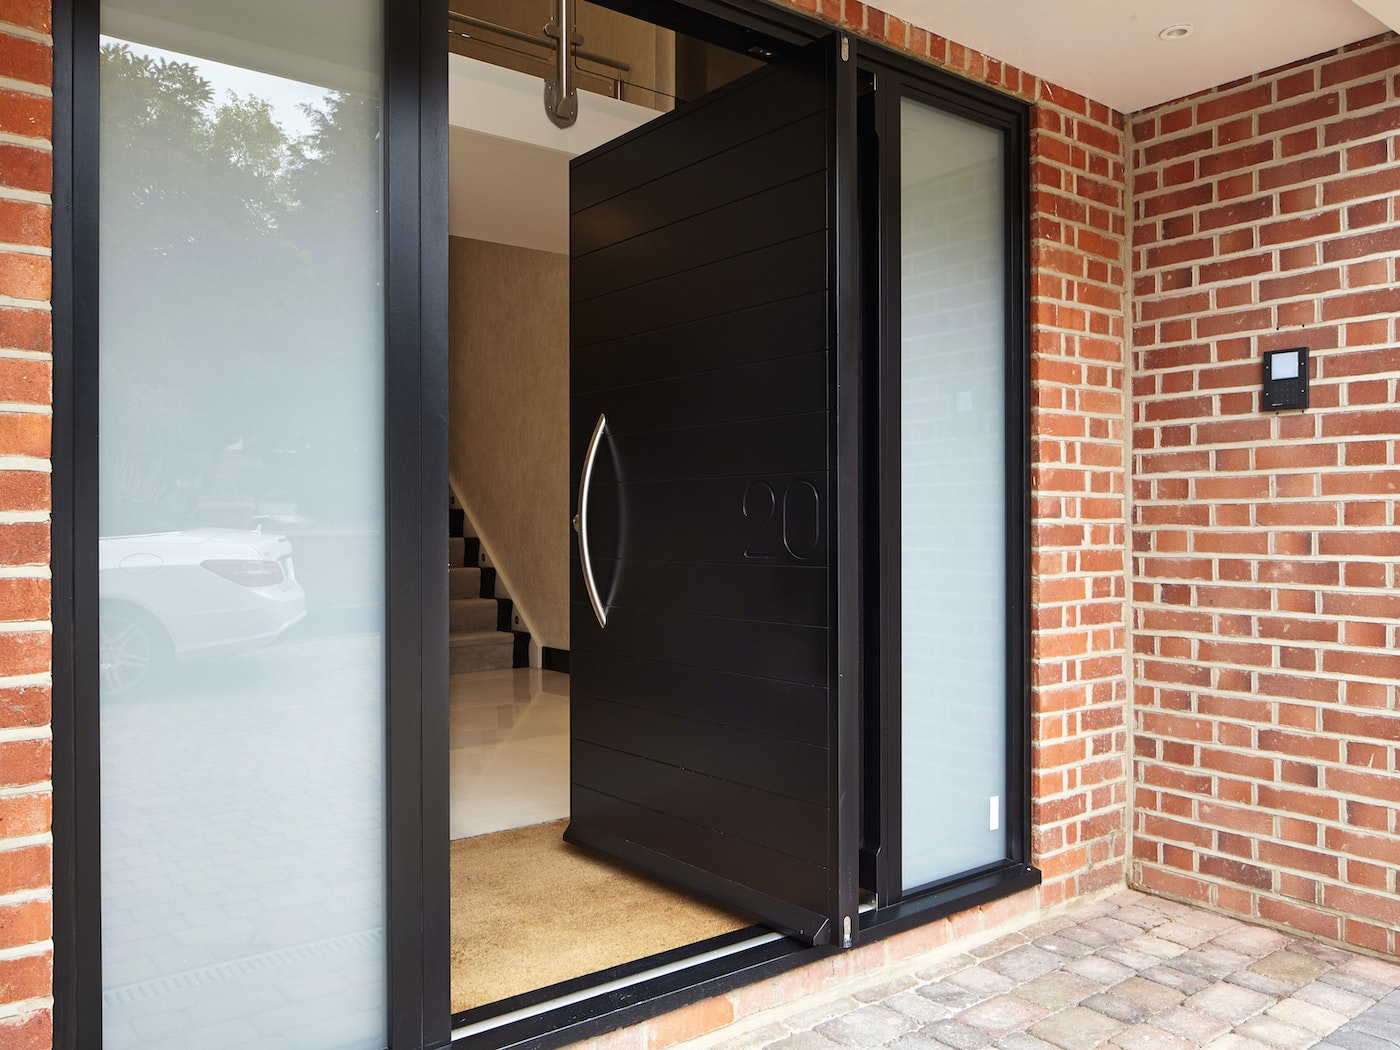 The pivot opening style adds to the contemporary look